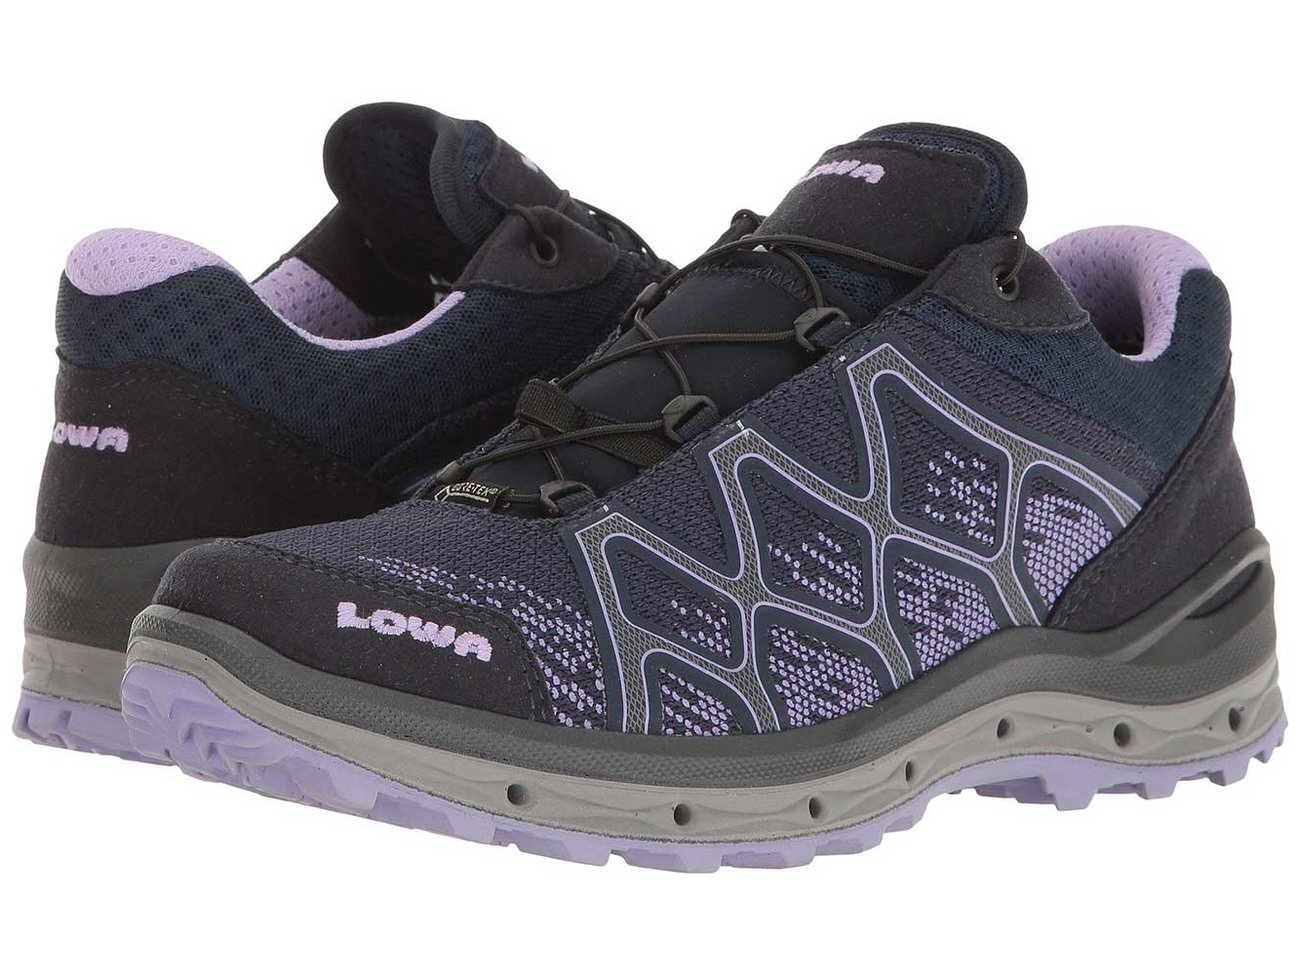 lowa-aerox-hiking-shoe-HIKEWOMEN0418.jpg